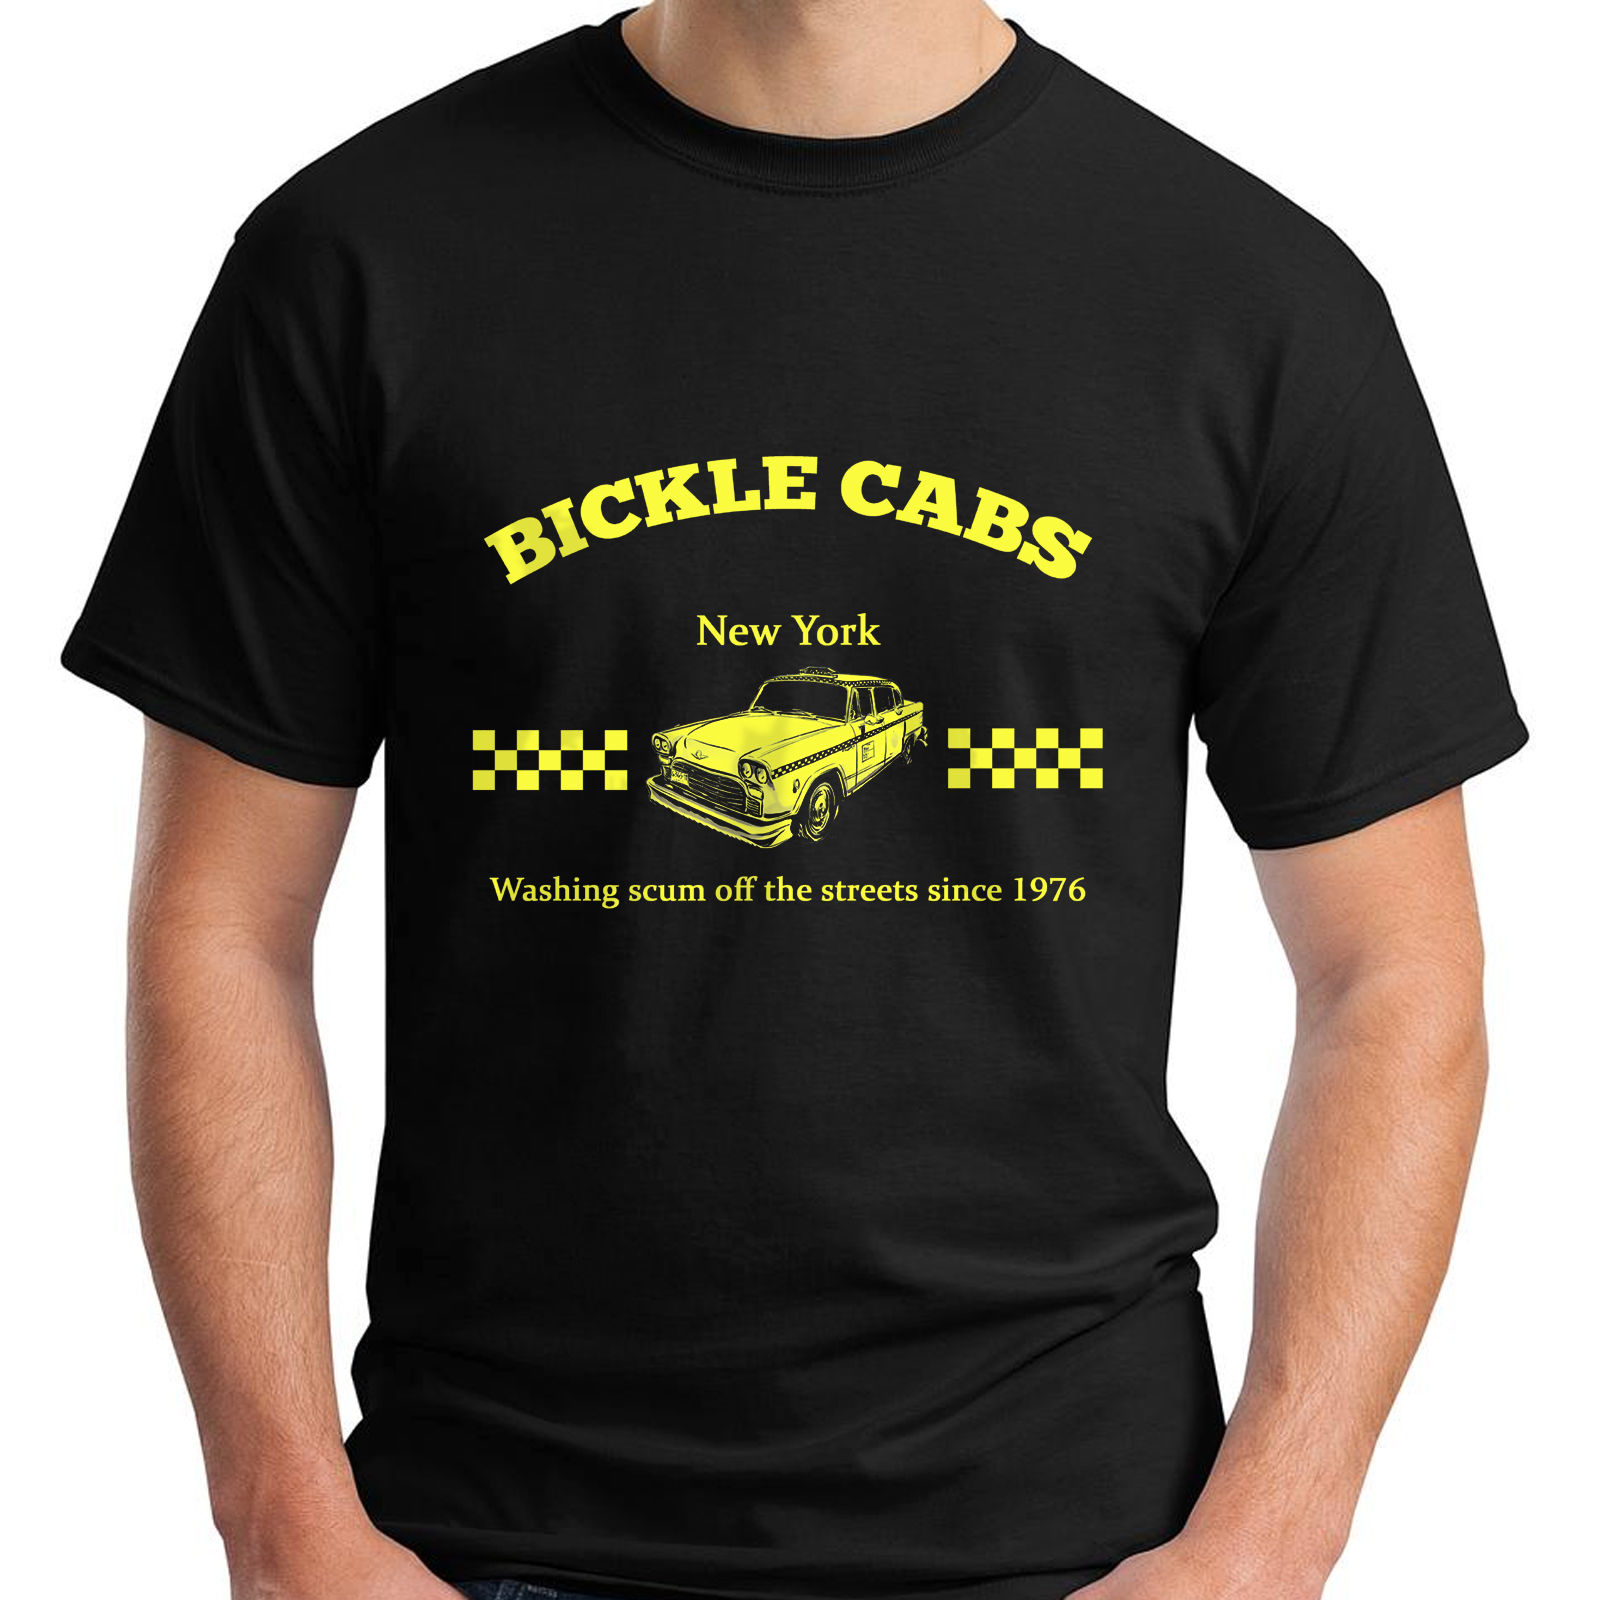 Bickle Cabs T Shirt Inspired by Taxi Driver Cult 70s Movie T-Shirt Size S-3XL New Fashion T Shirts Graphic Letter